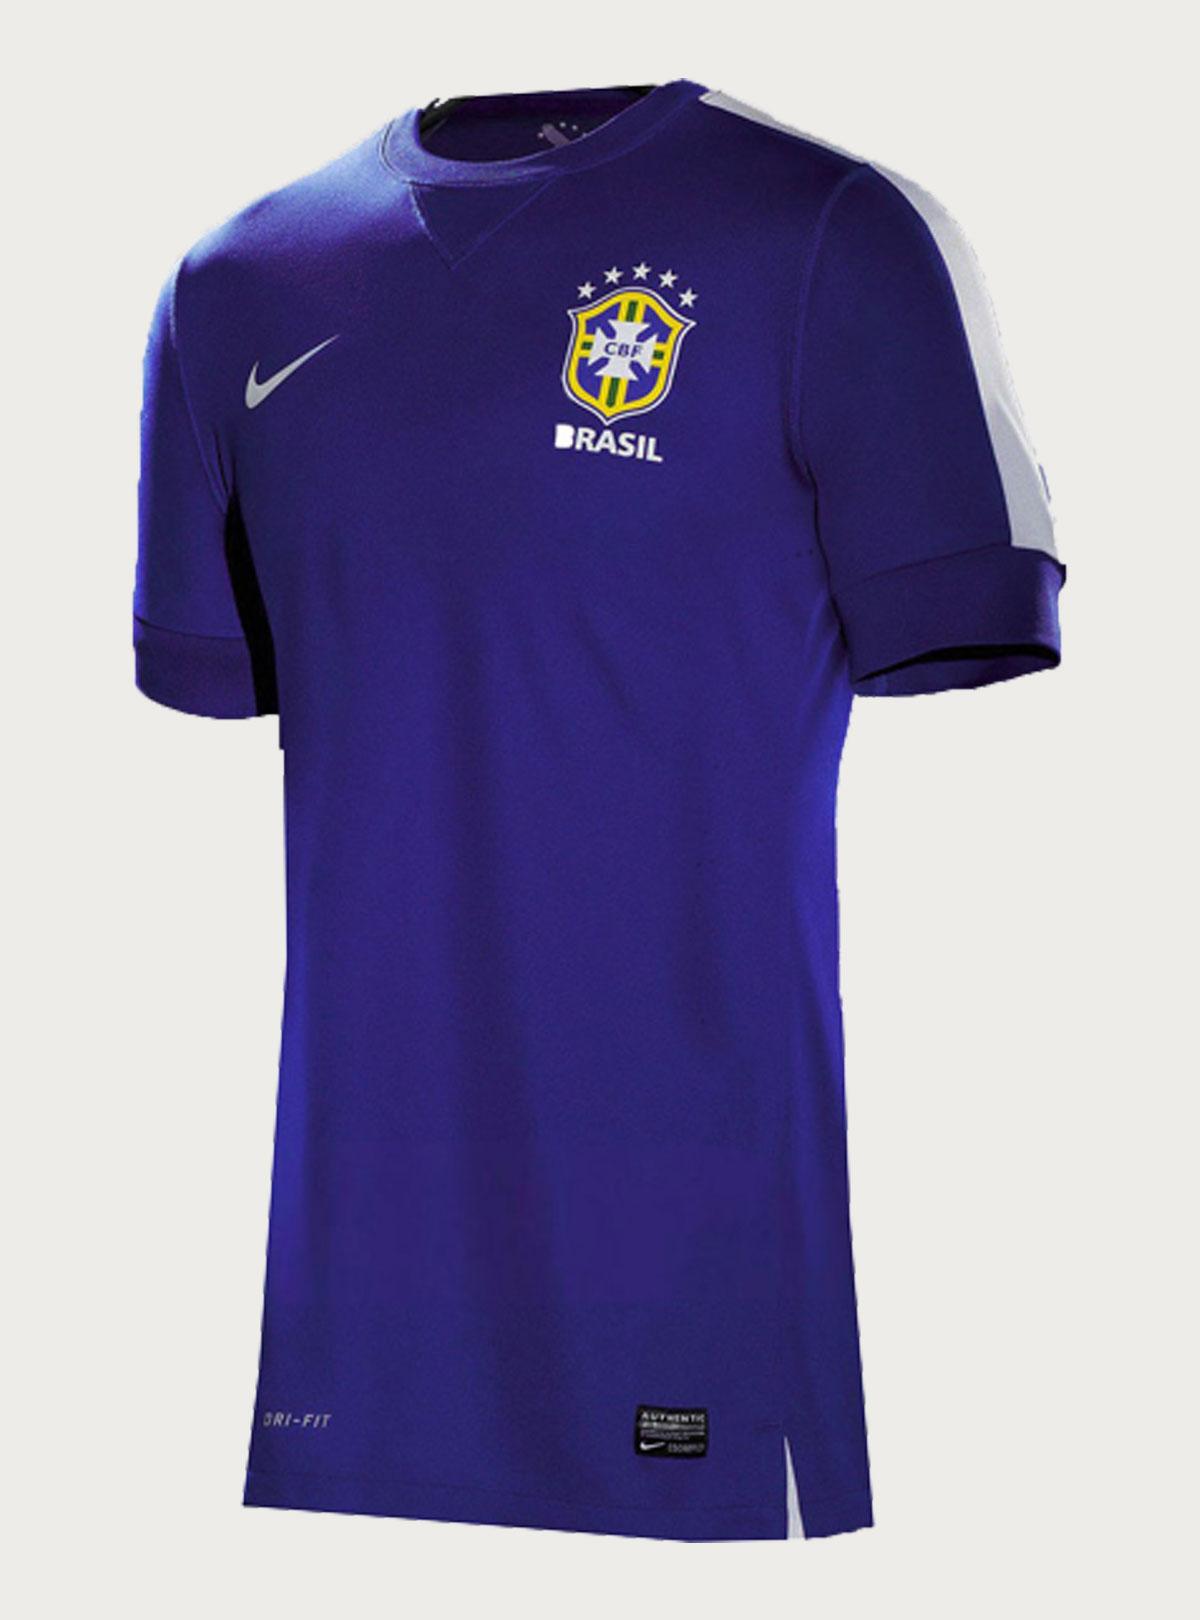 Brazil's Confed. Cup Away Premium Jersey